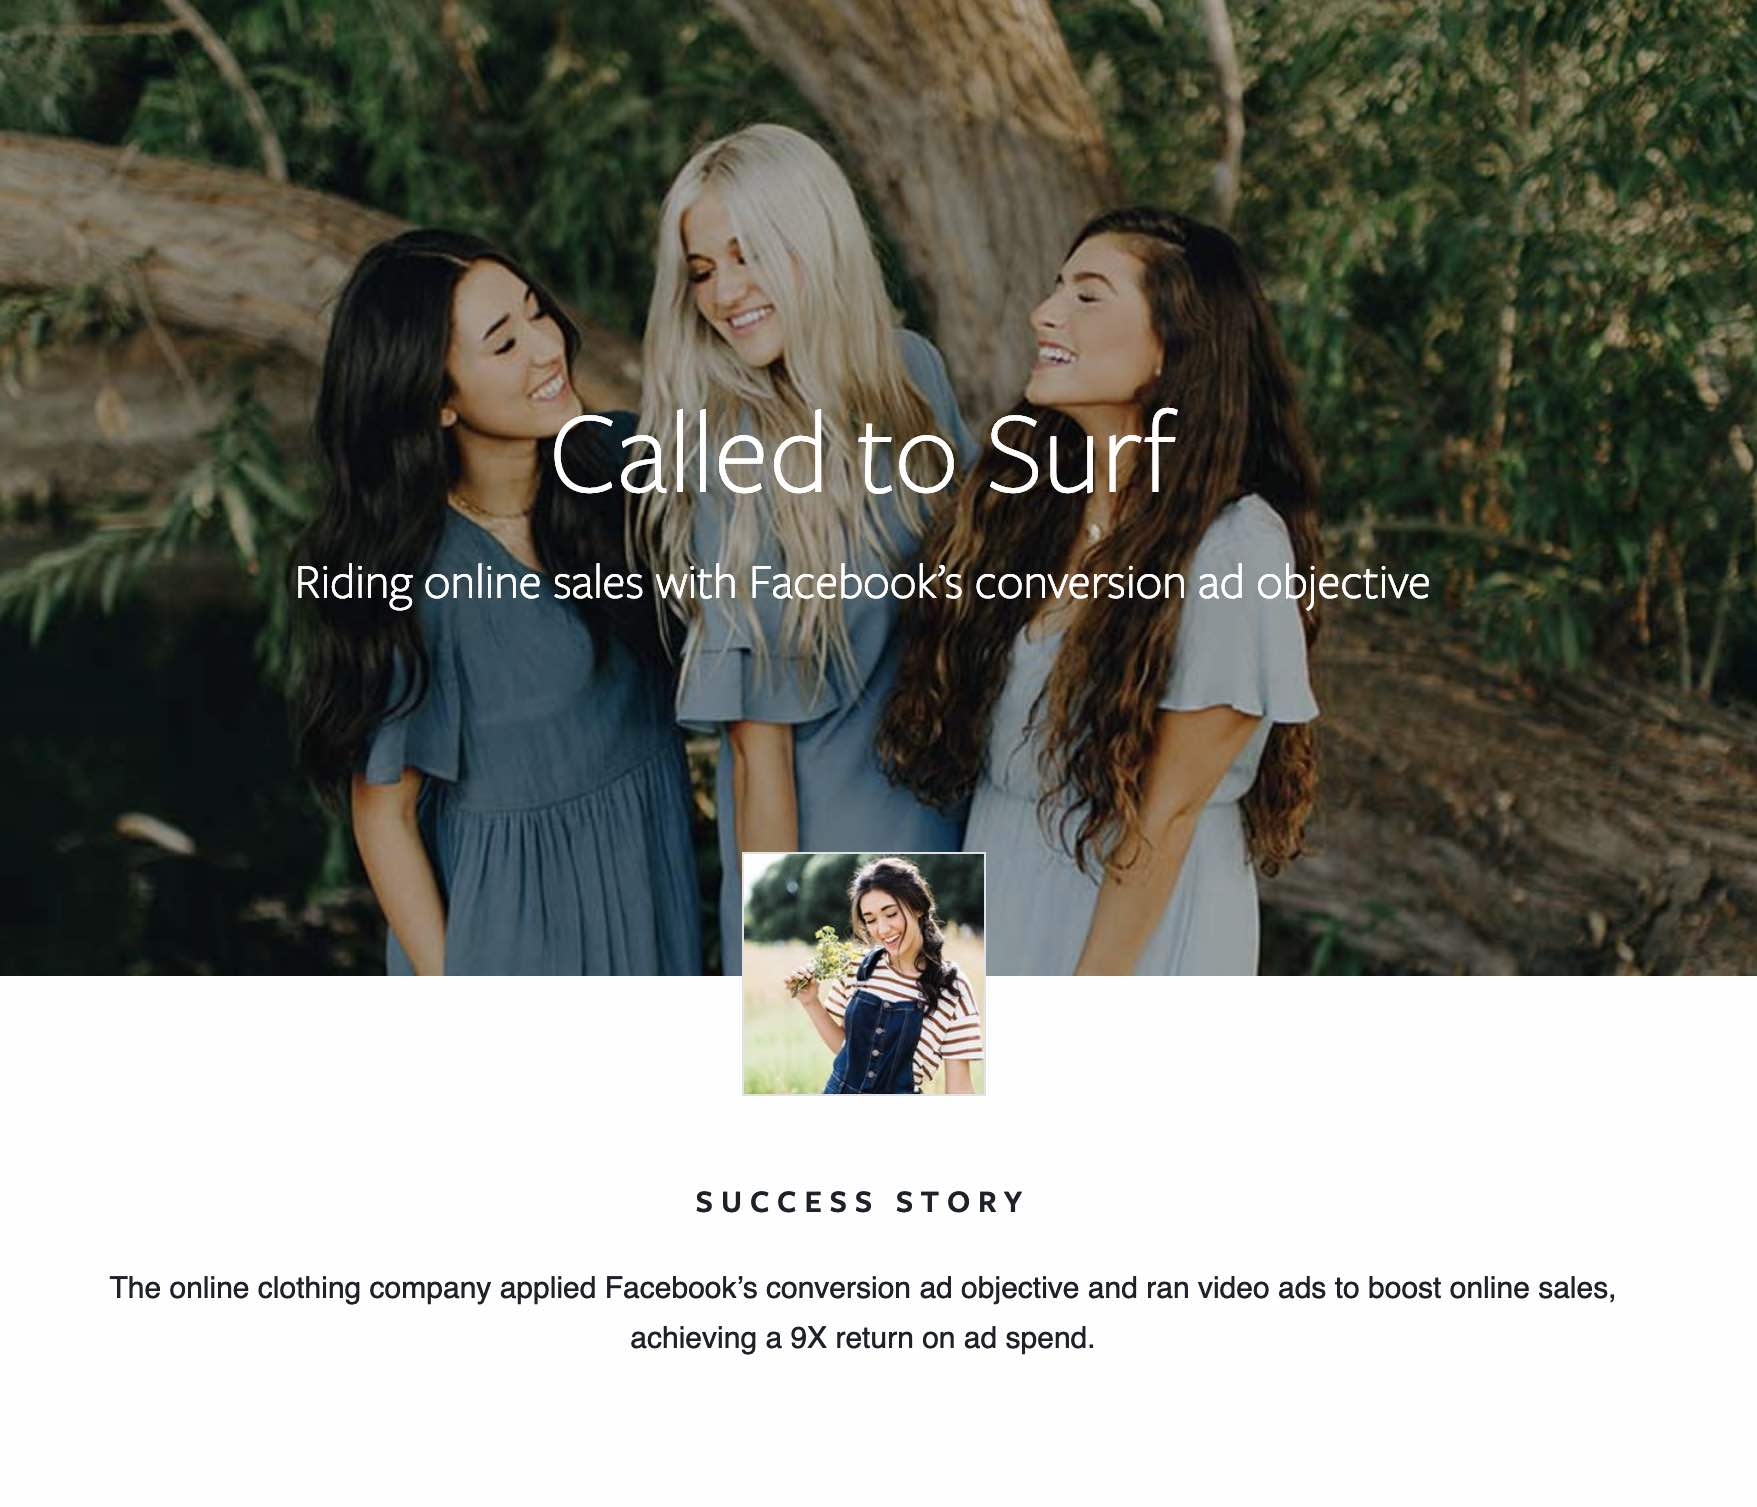 called-to-surf-case-study-CROPPED